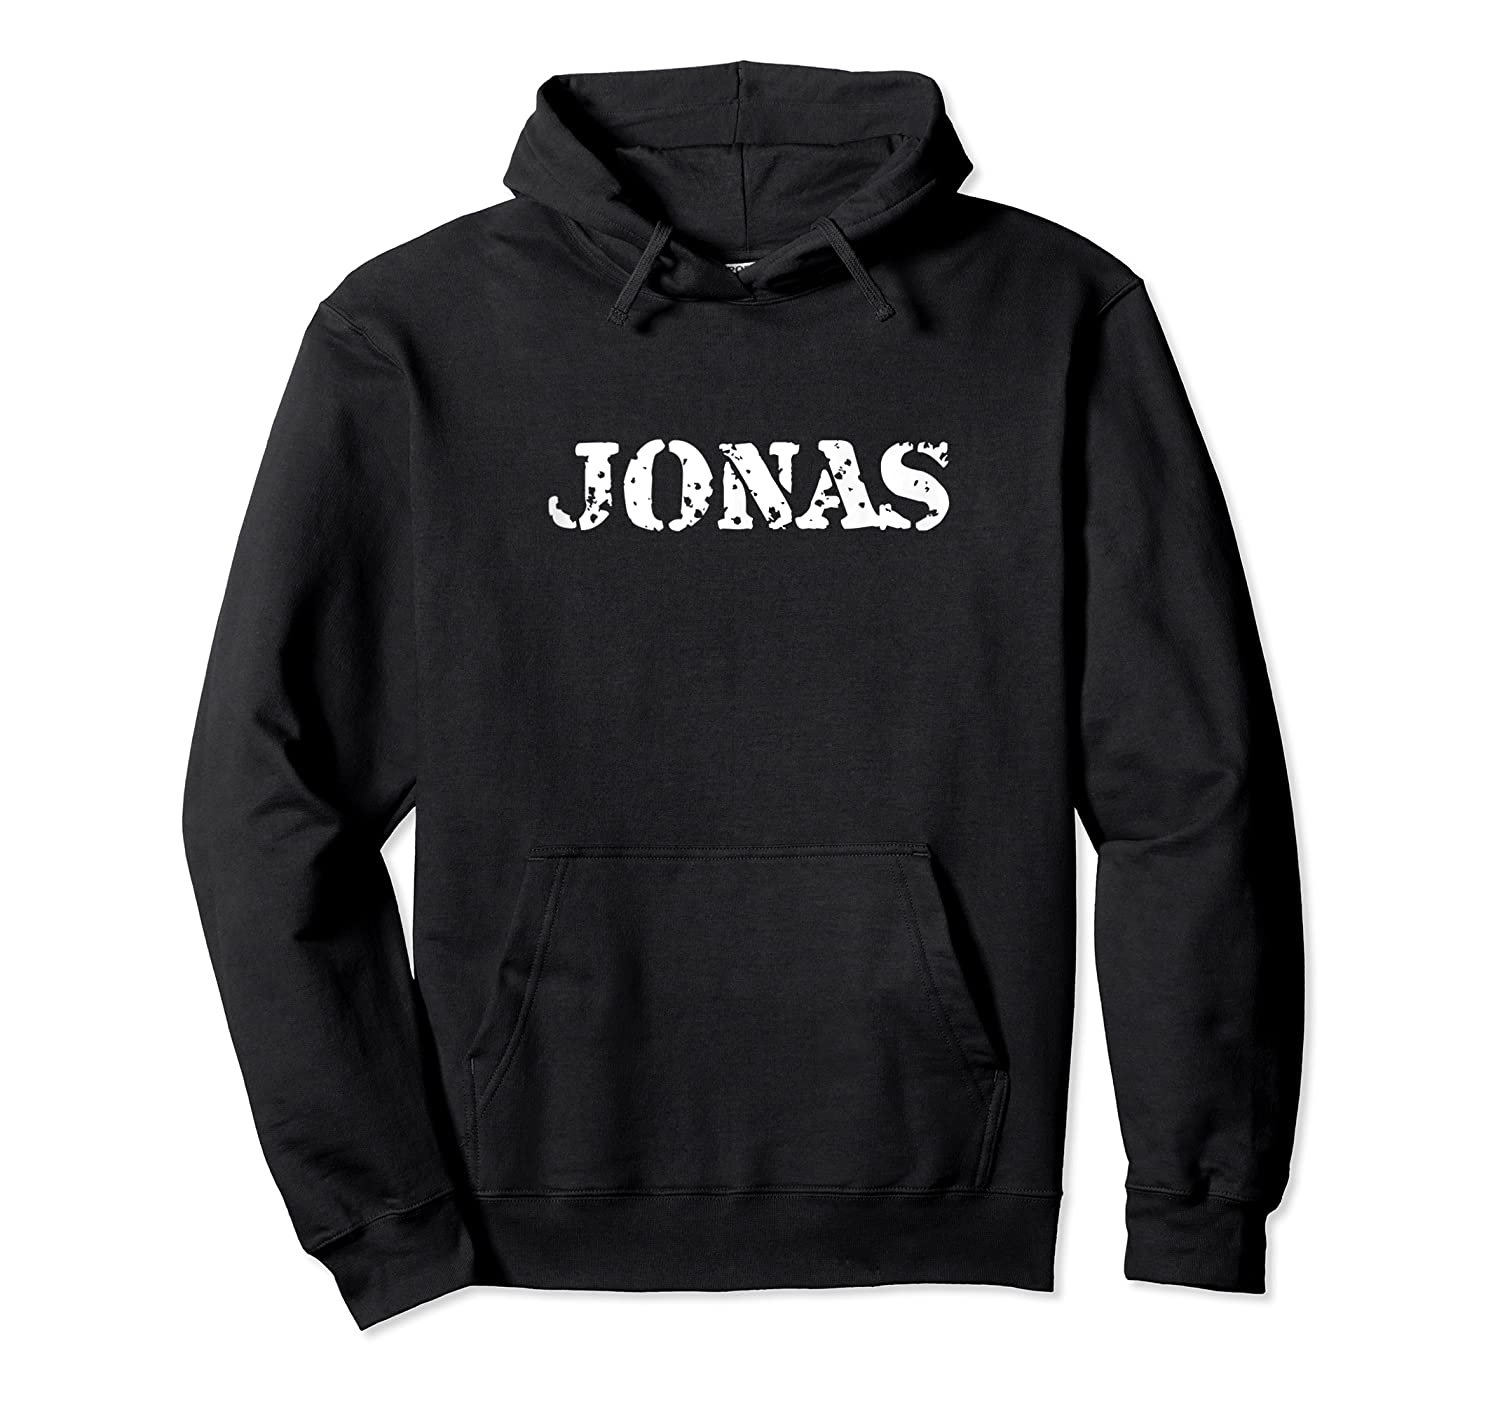 Jonas First Given Name Pride Distressed Gift Tank Top Shirts Unisex Pullover Hoodie